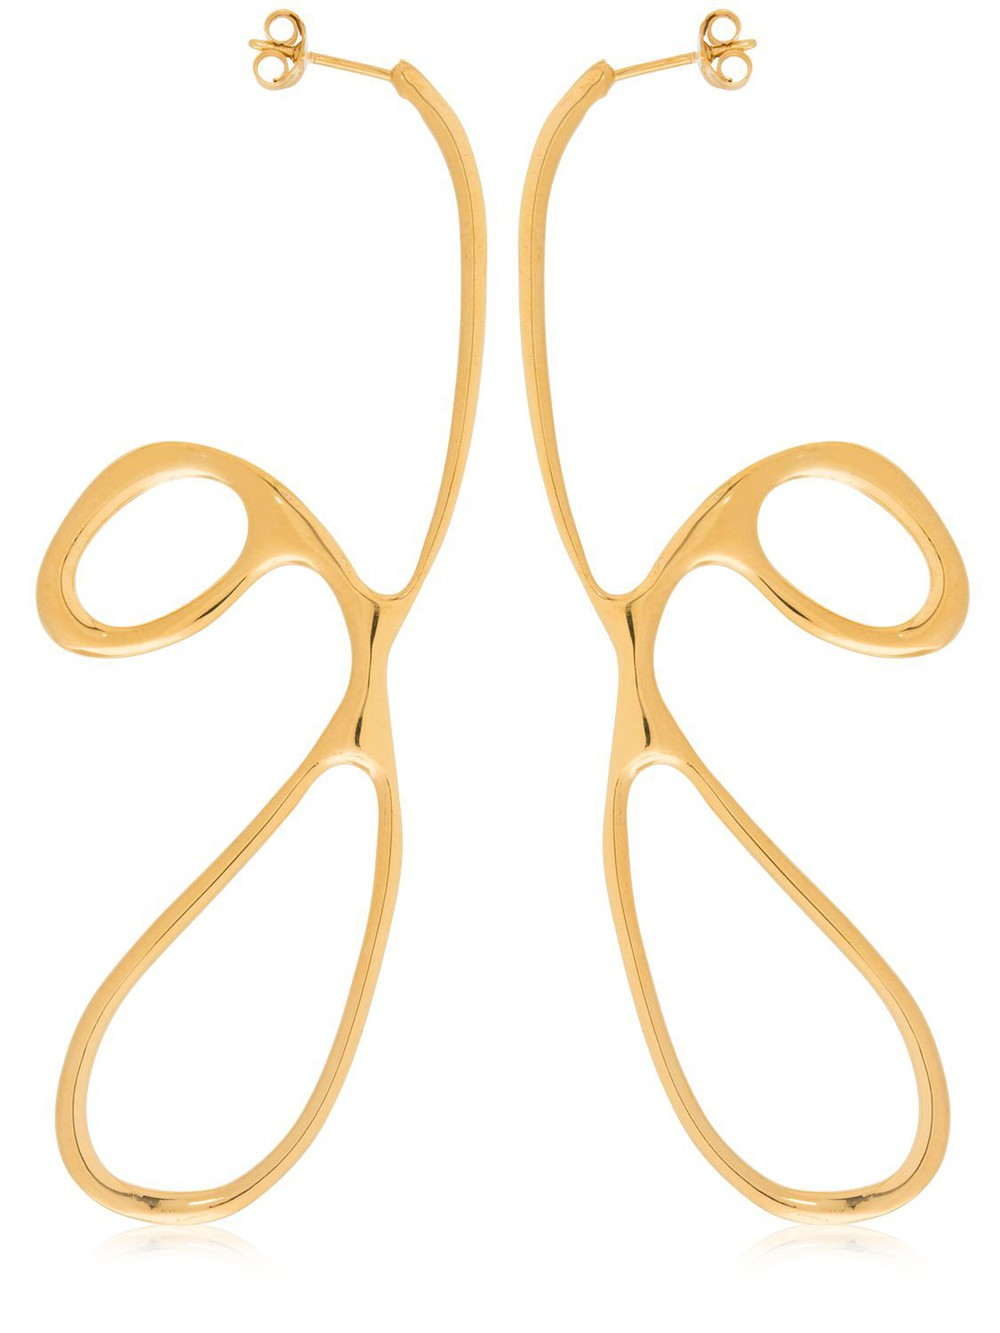 BAR JEWELLERY Curl Gold Plated Earrings